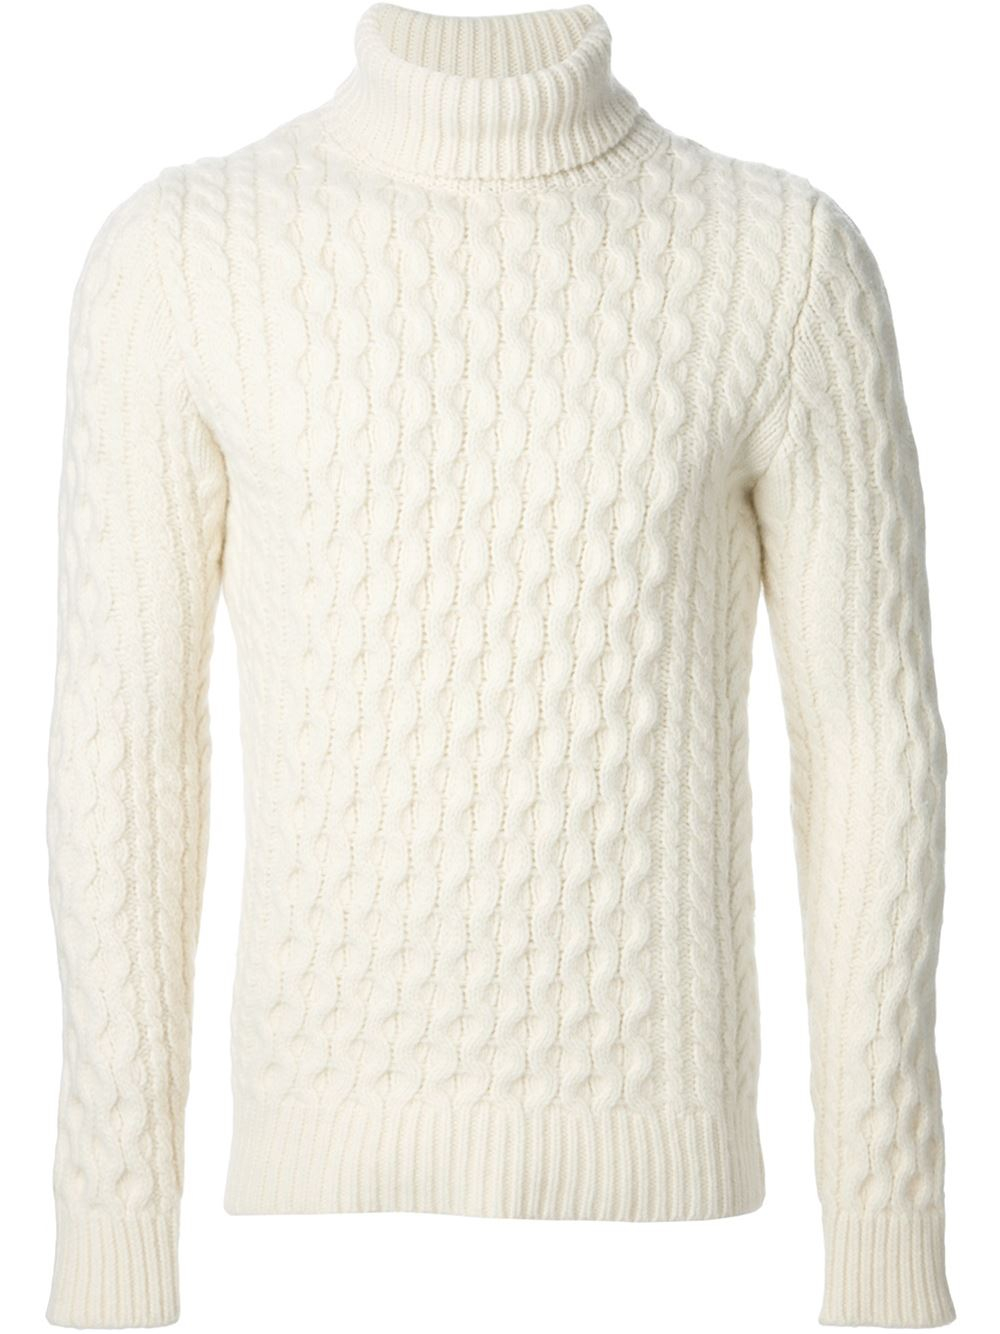 Mens Mock Neck Sweater